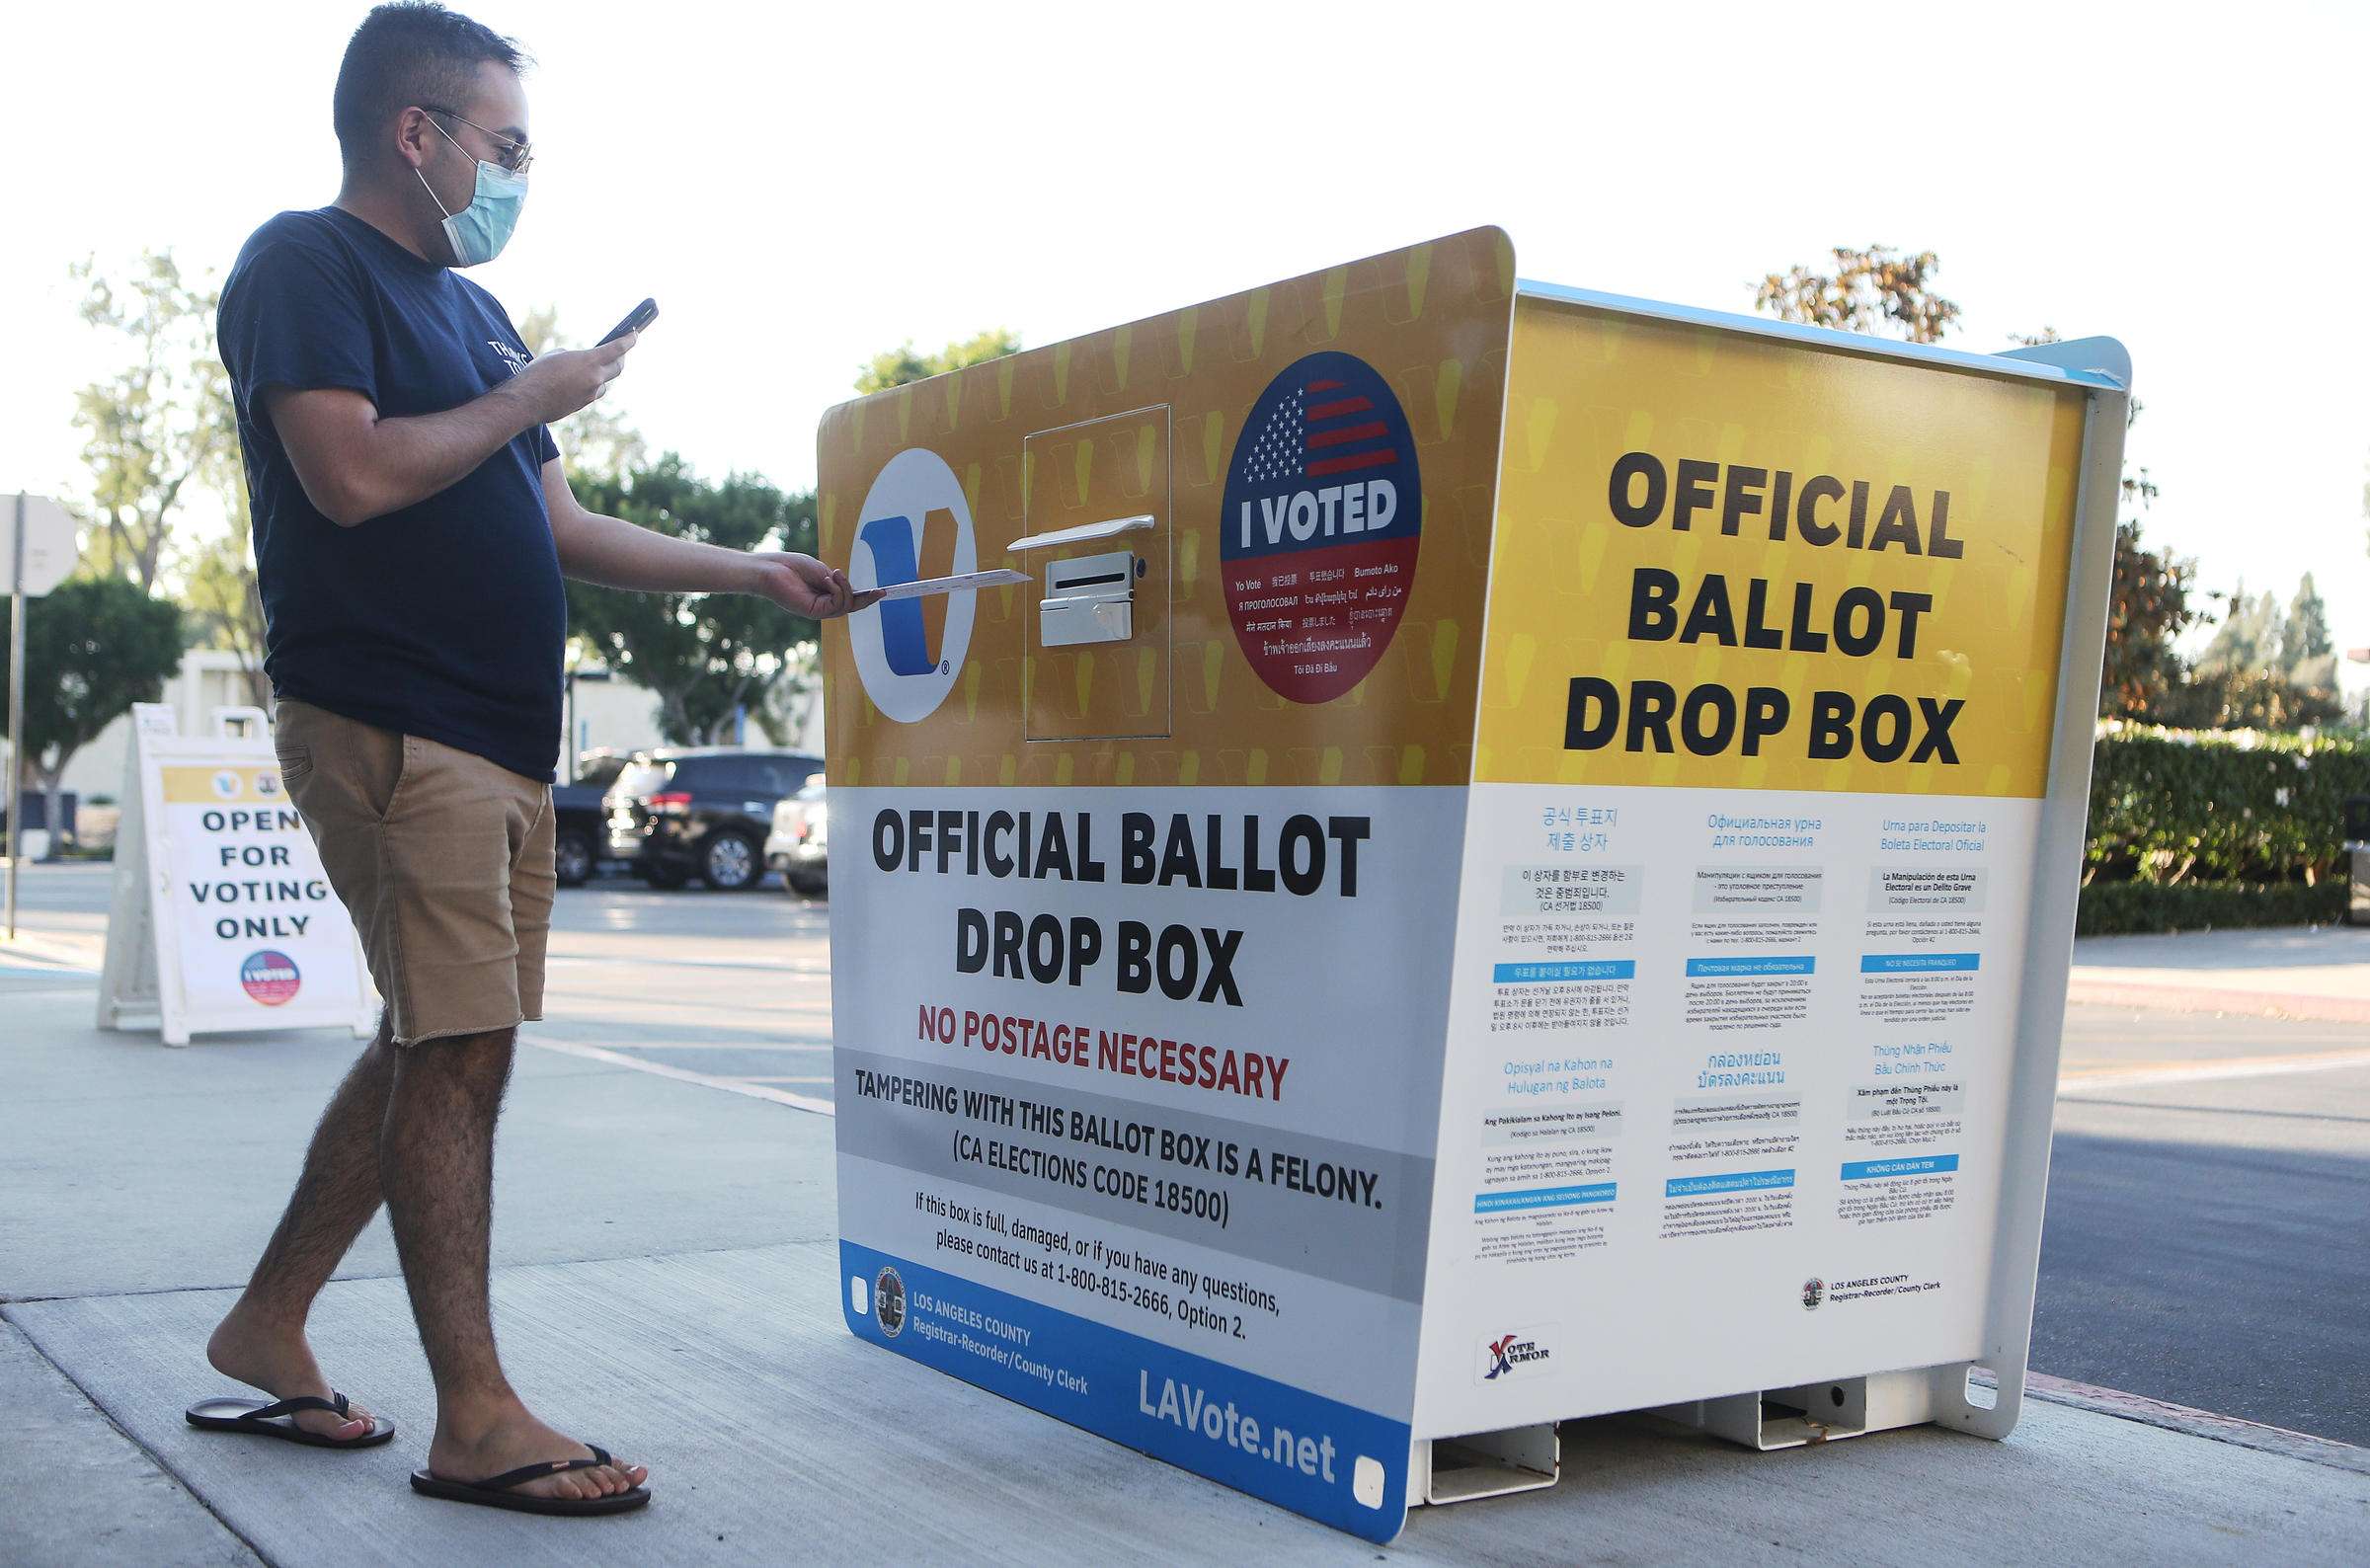 California GOP leaders refuse to remove unauthorized ballot boxes